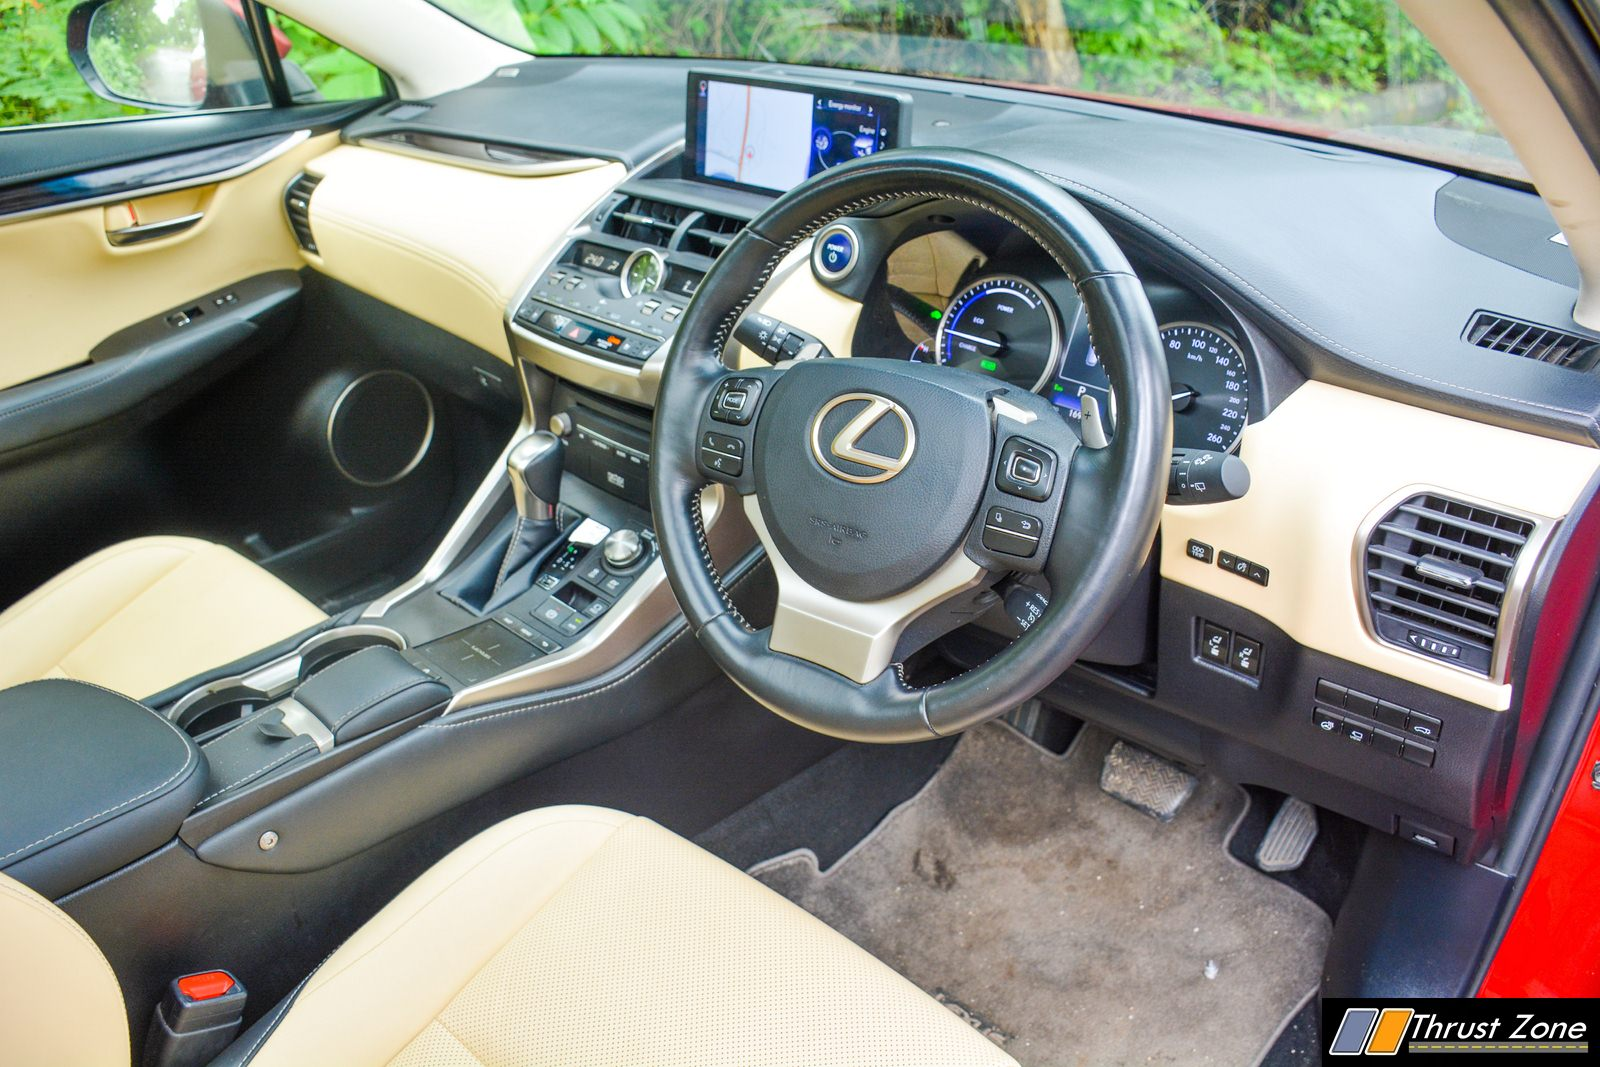 https://www.thrustzone.com/wp-content/uploads/2018/07/2018-Lexus-NX300h-India-Review-13.jpg